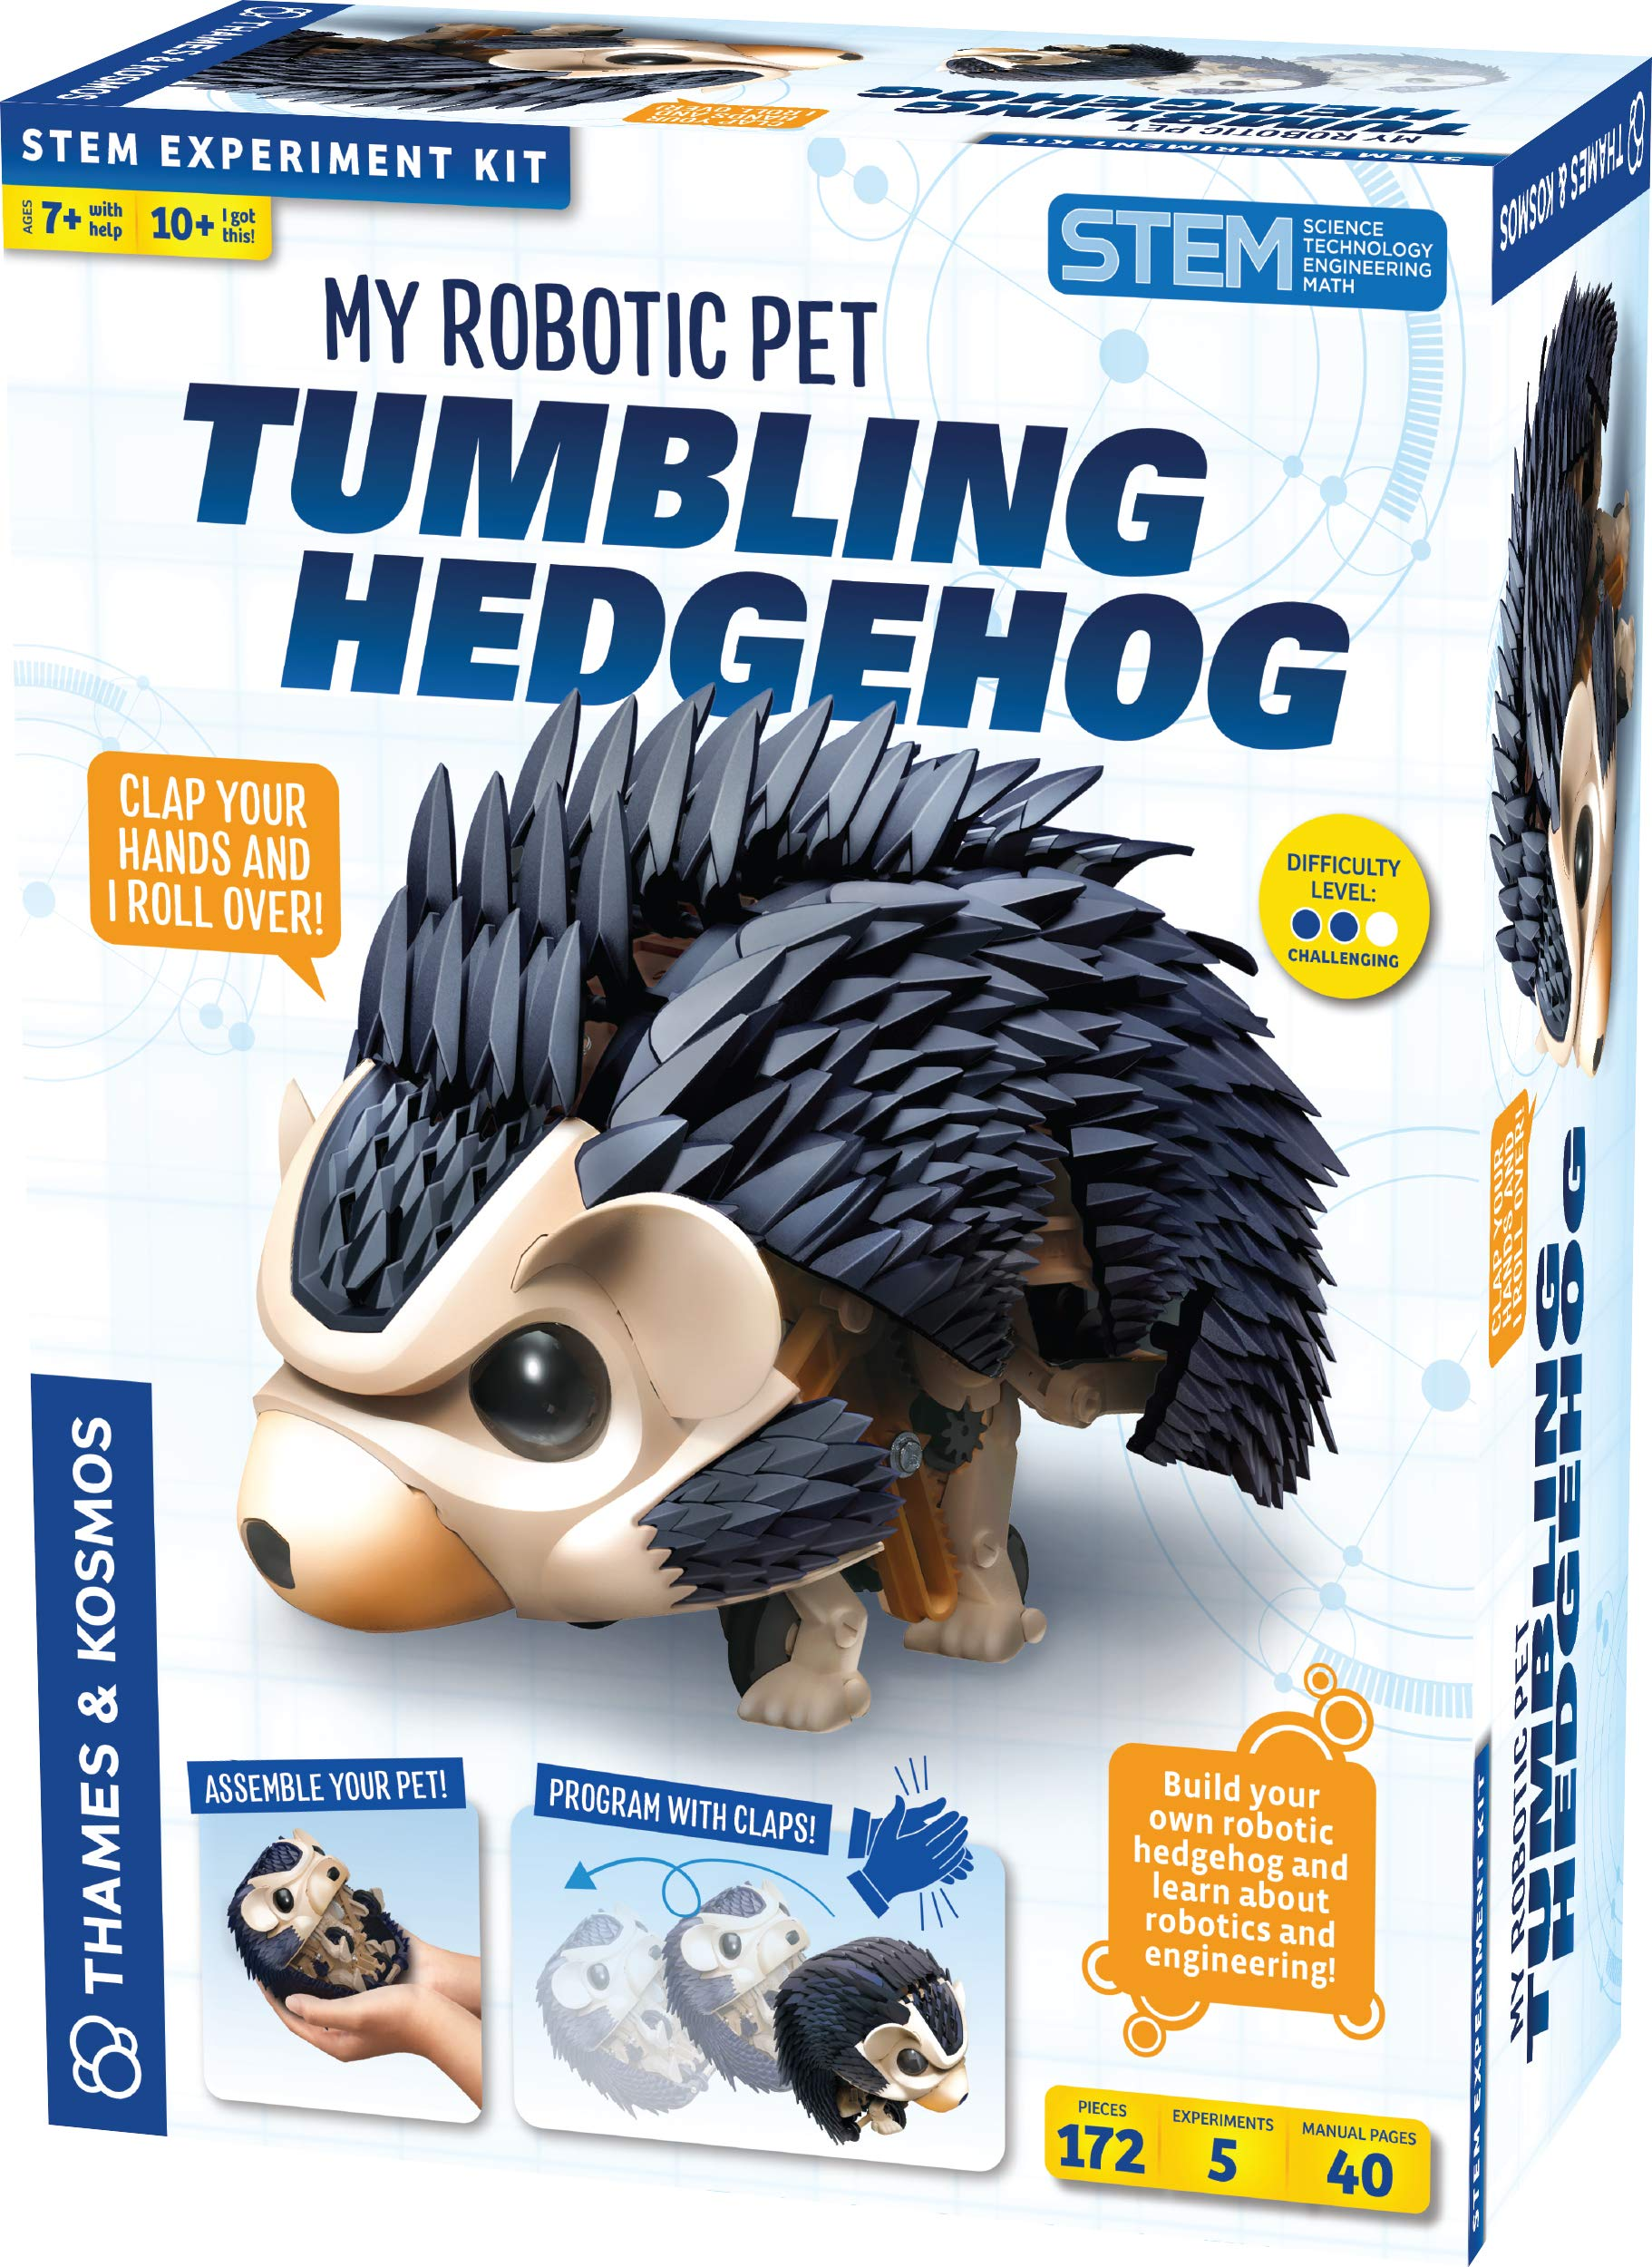 Thames & Kosmos My Robotic Pet - Tumbling Hedgehog Science Experiment & Model Building Kit, Build Your Own Sound Activated Tumbling, Rolling, Scurrying Pet Hedgehog by Thames & Kosmos